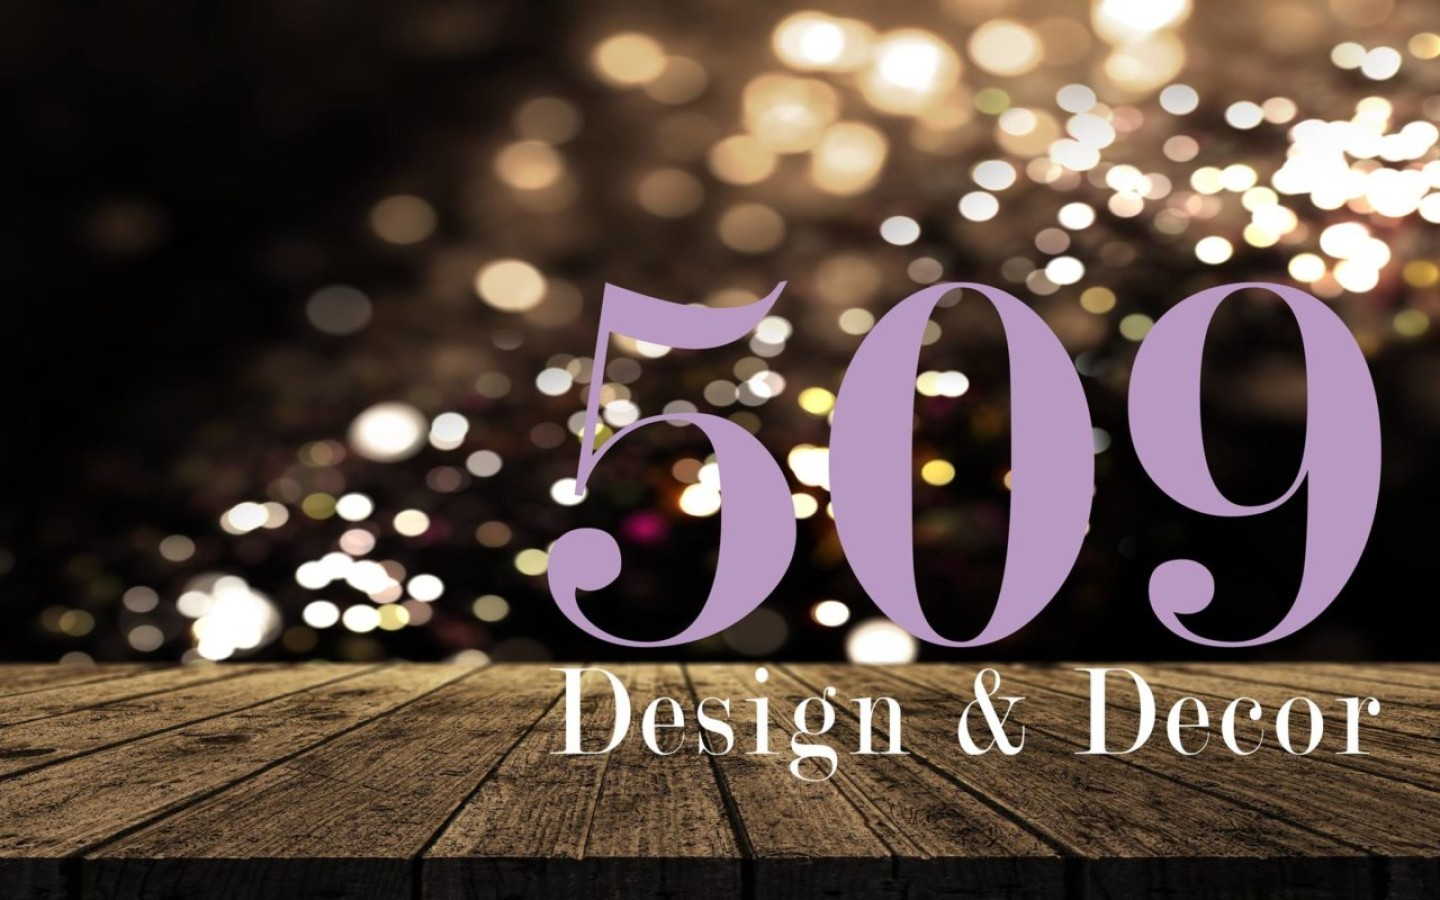 509 Design & Decor